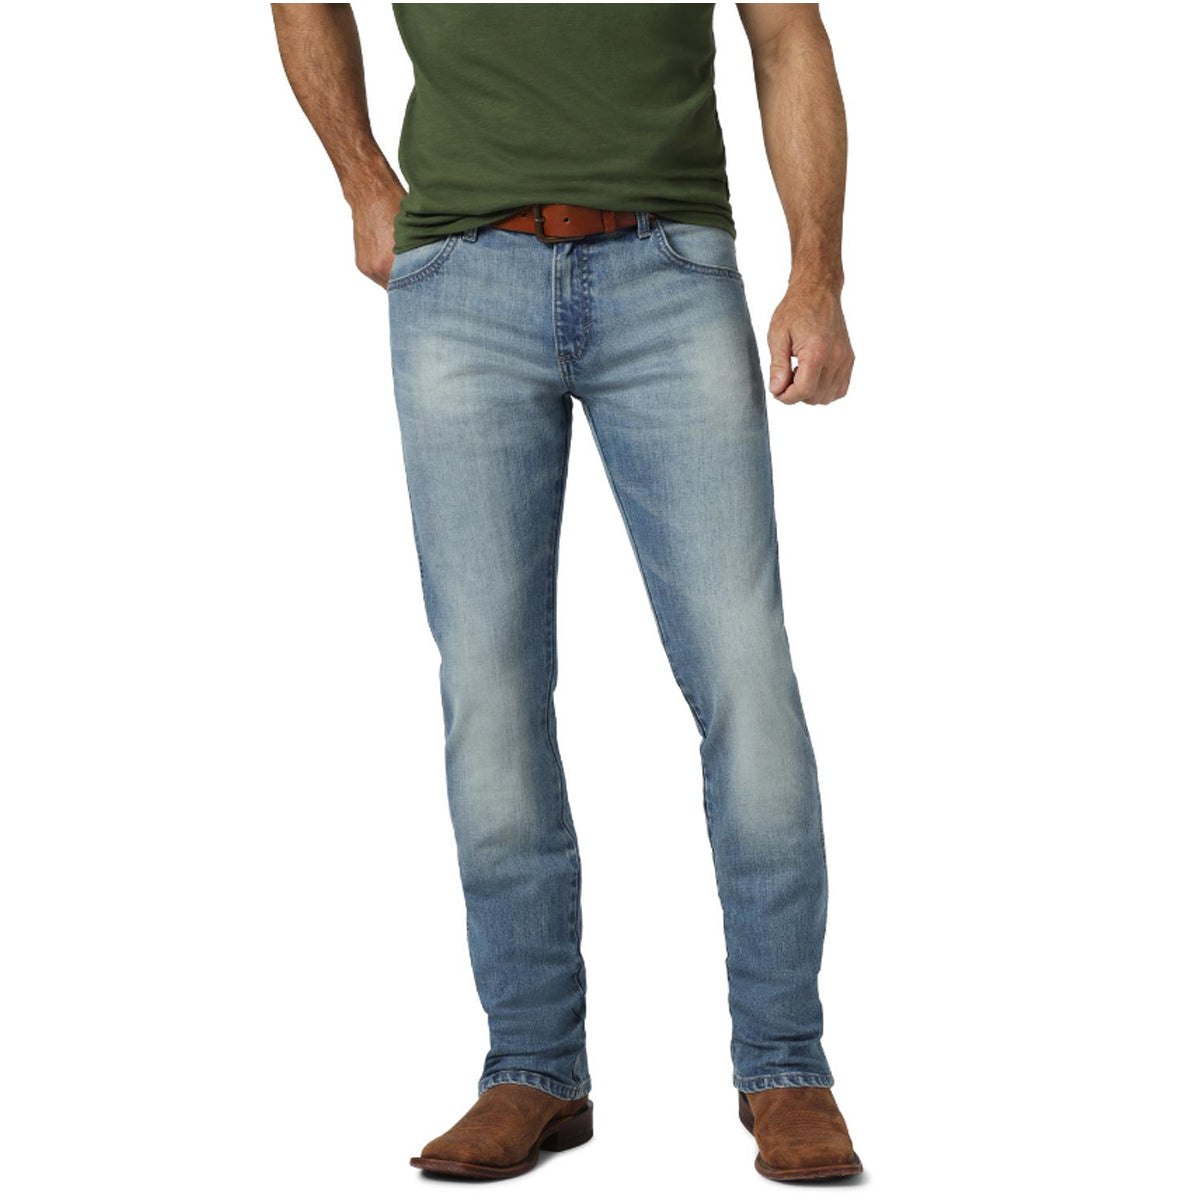 Wrangler Men's Retro Slim Straight Jeans - Jacksboro